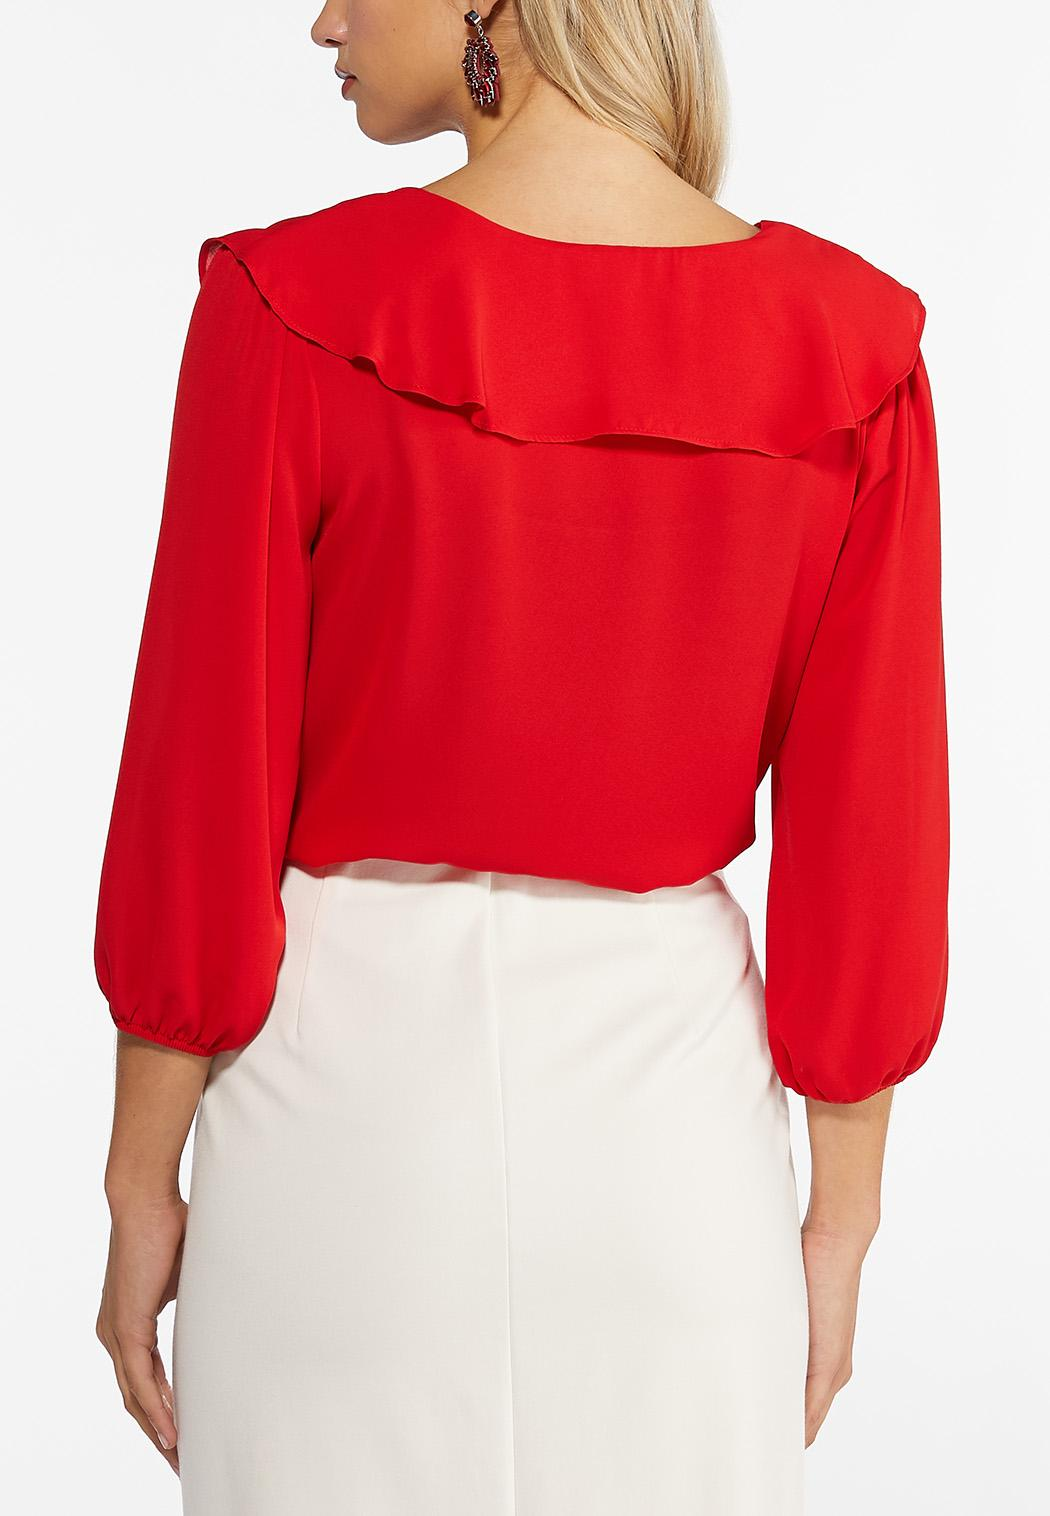 Plus Size Red Ruffled Top (Item #44459408)